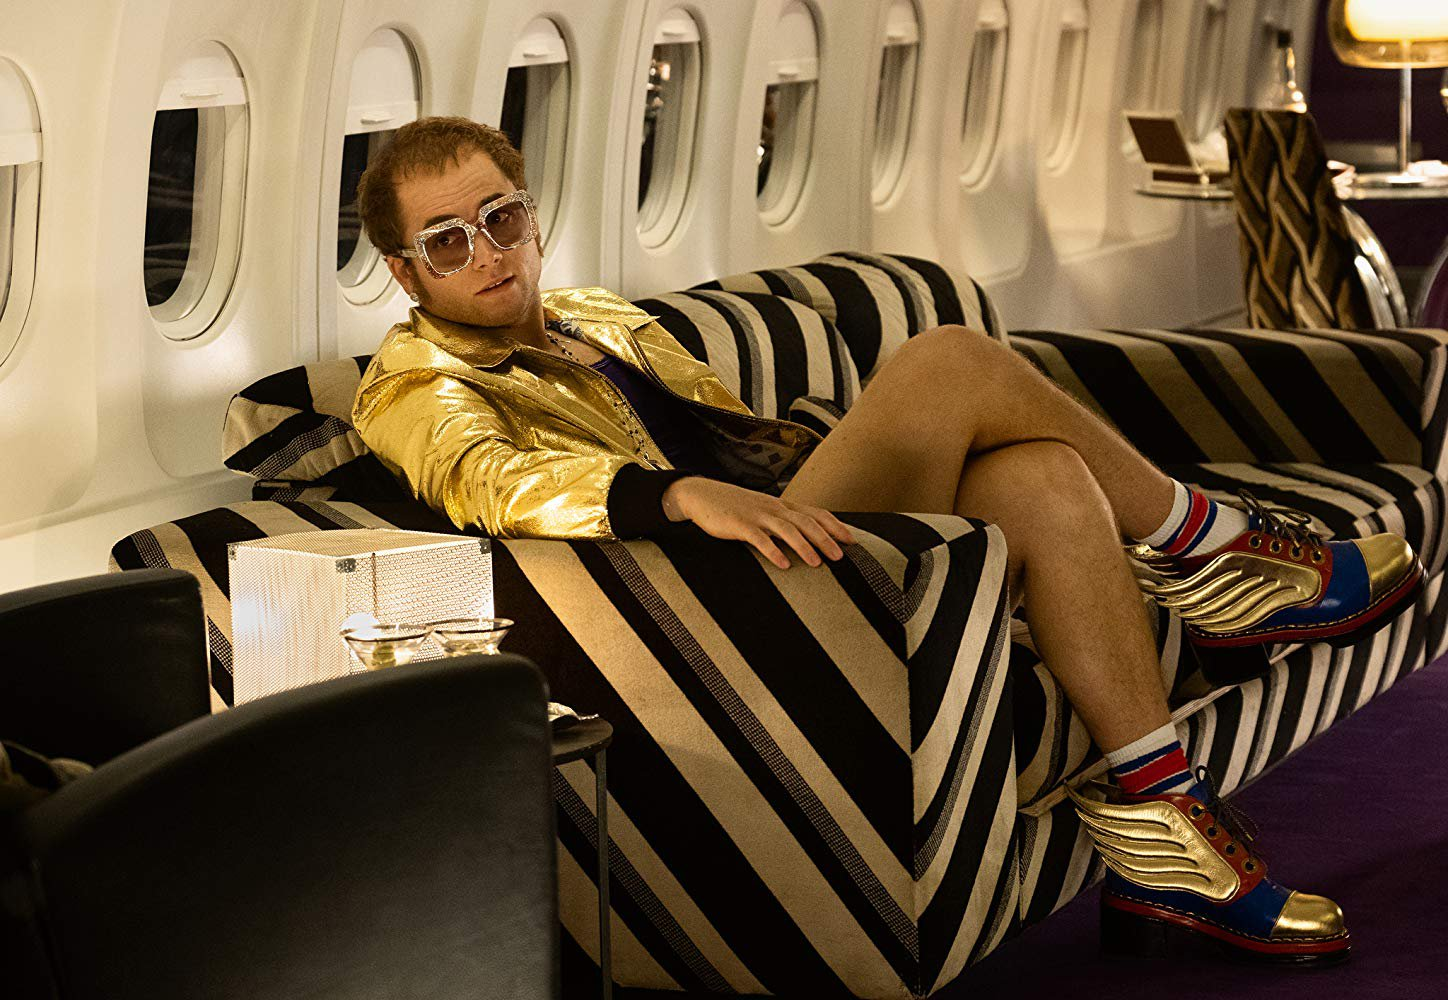 Taron Egerton as Rocketman Elton John